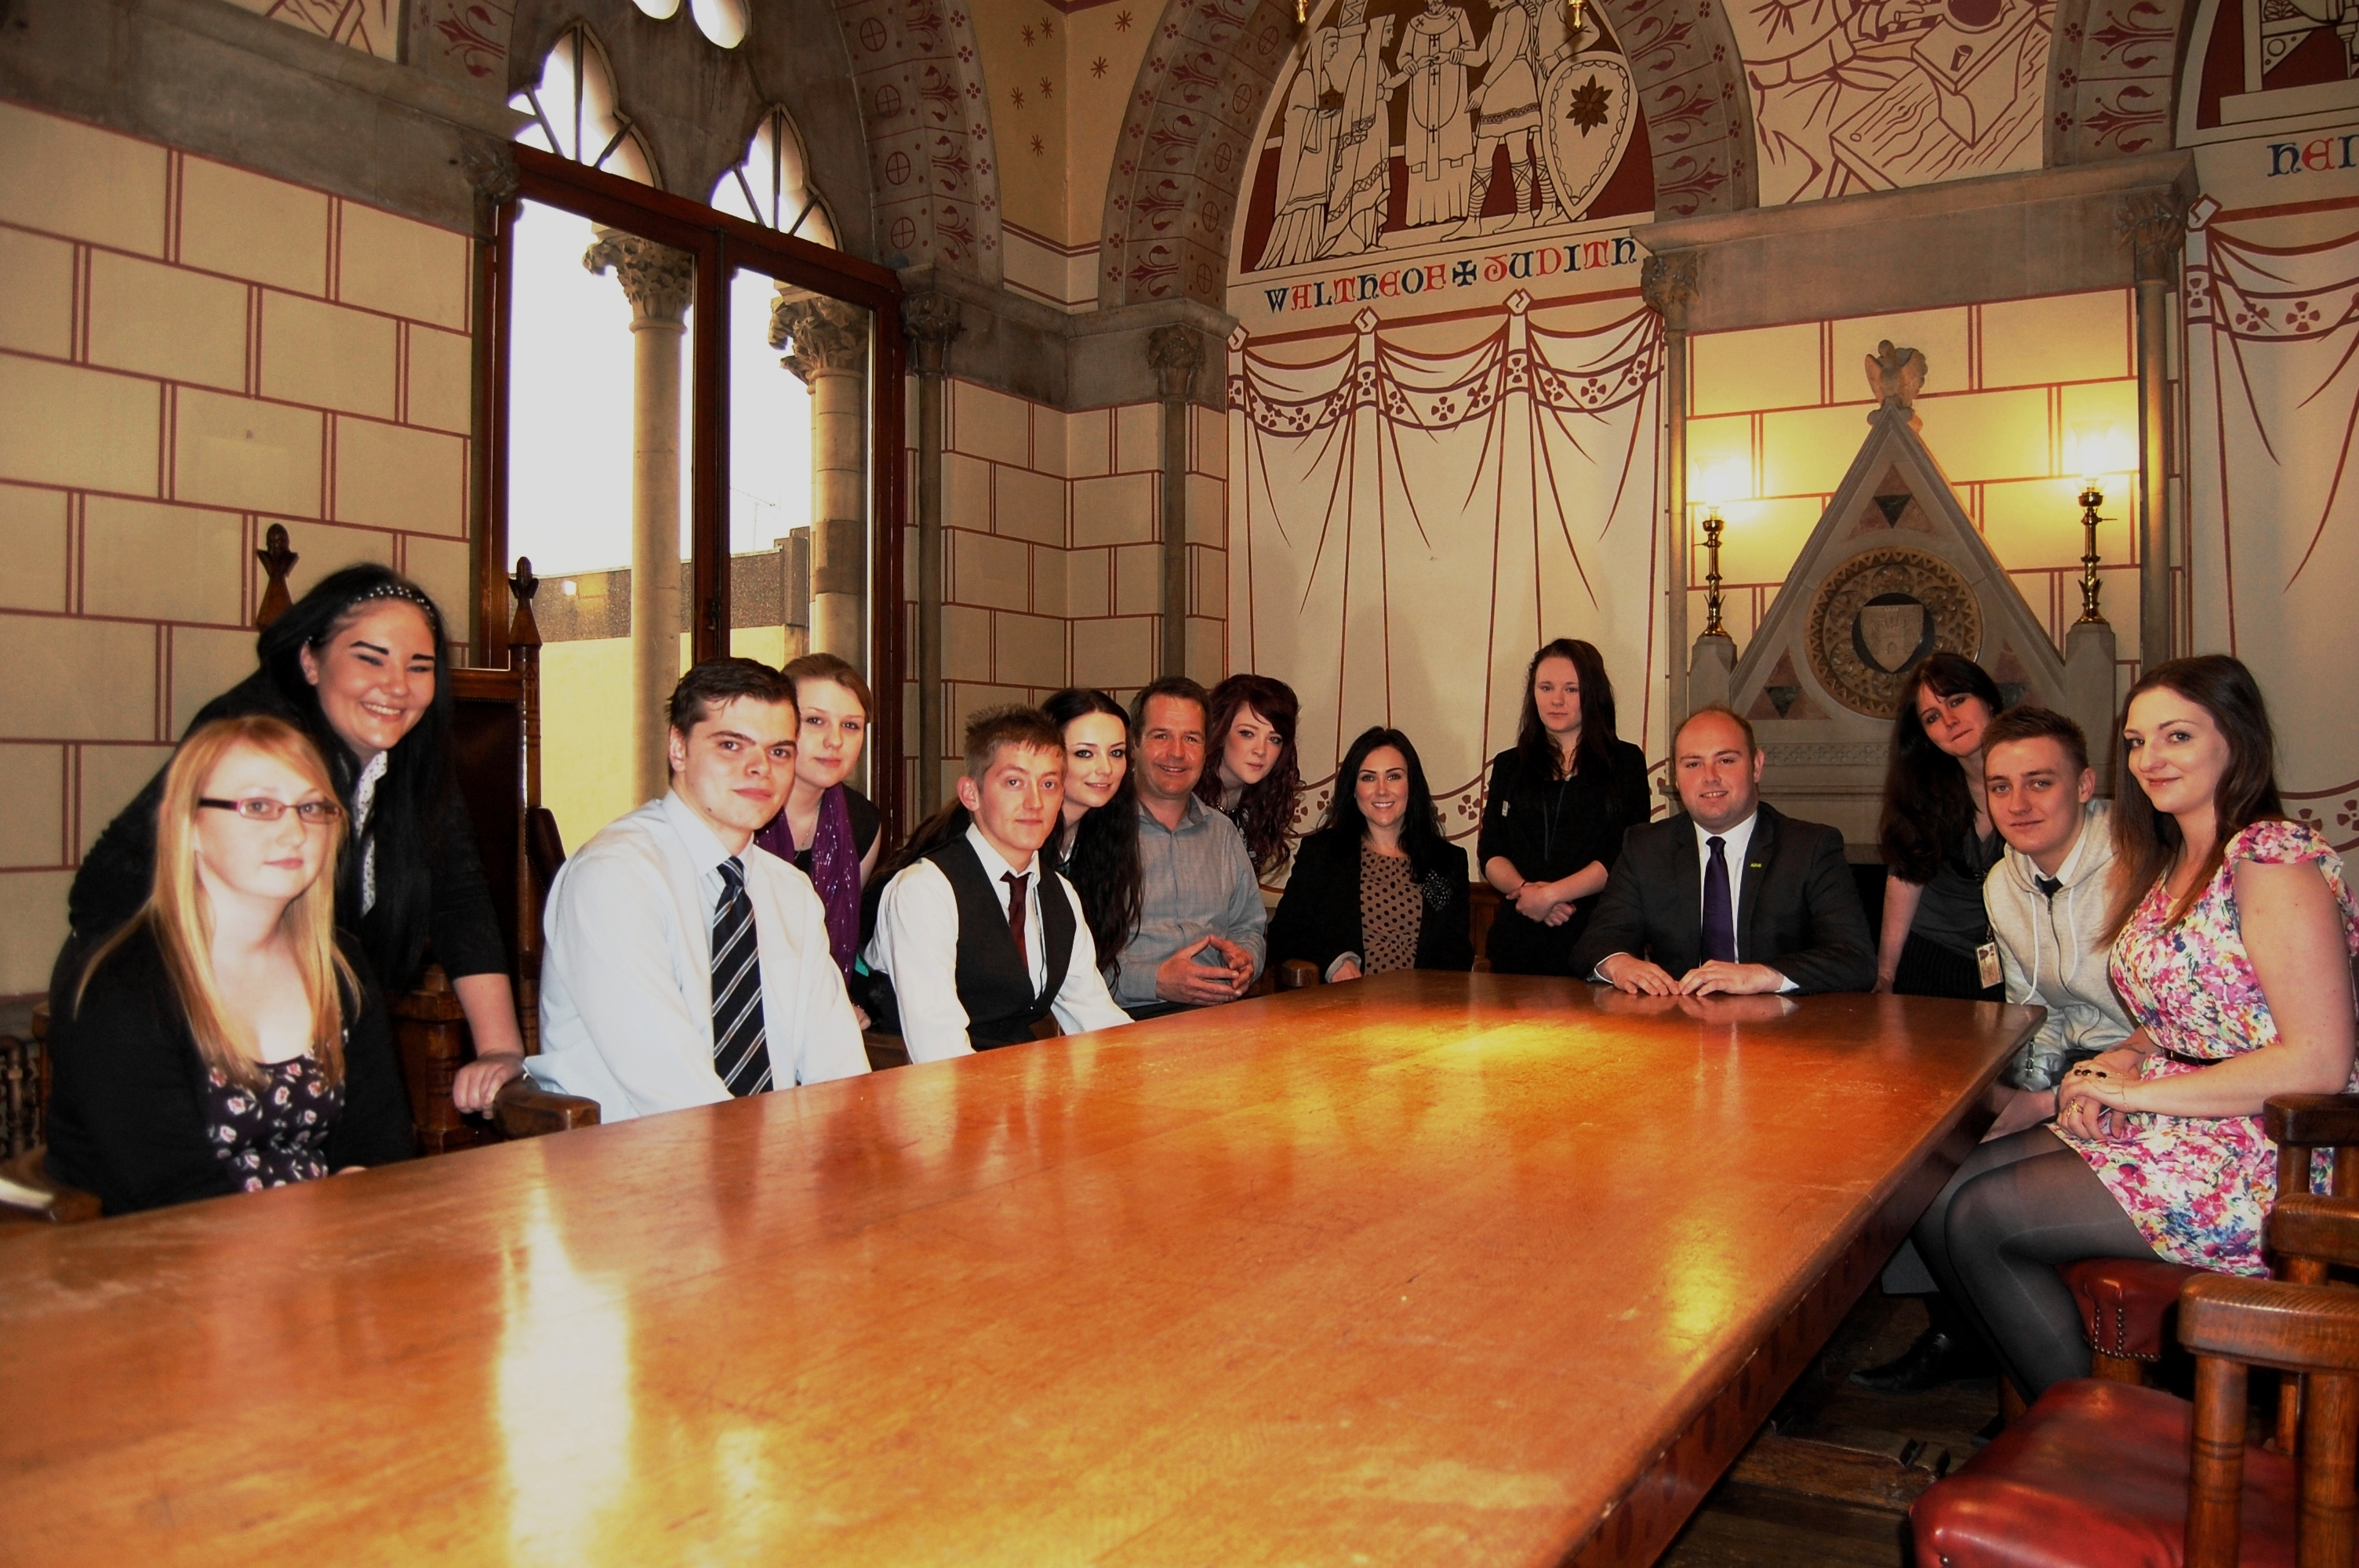 Cllr. David Mackintosh, Dale Willis and Joanna Enright from Starting Off Ltd with the young apprentices.